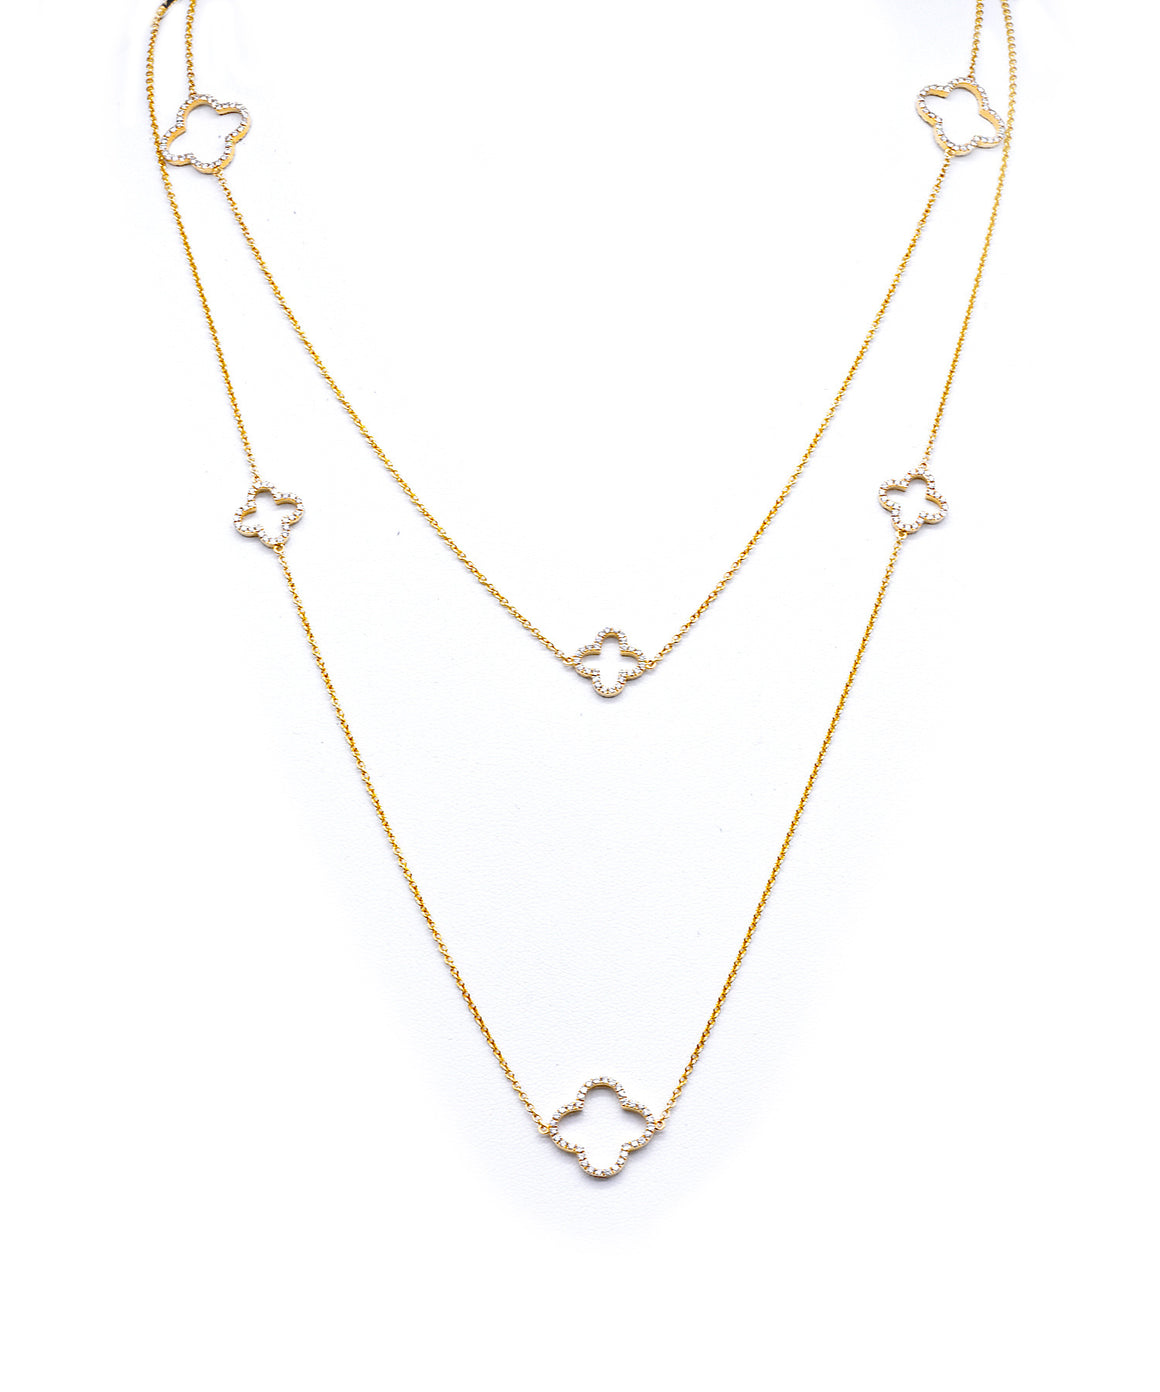 Clover chain in yellow gold